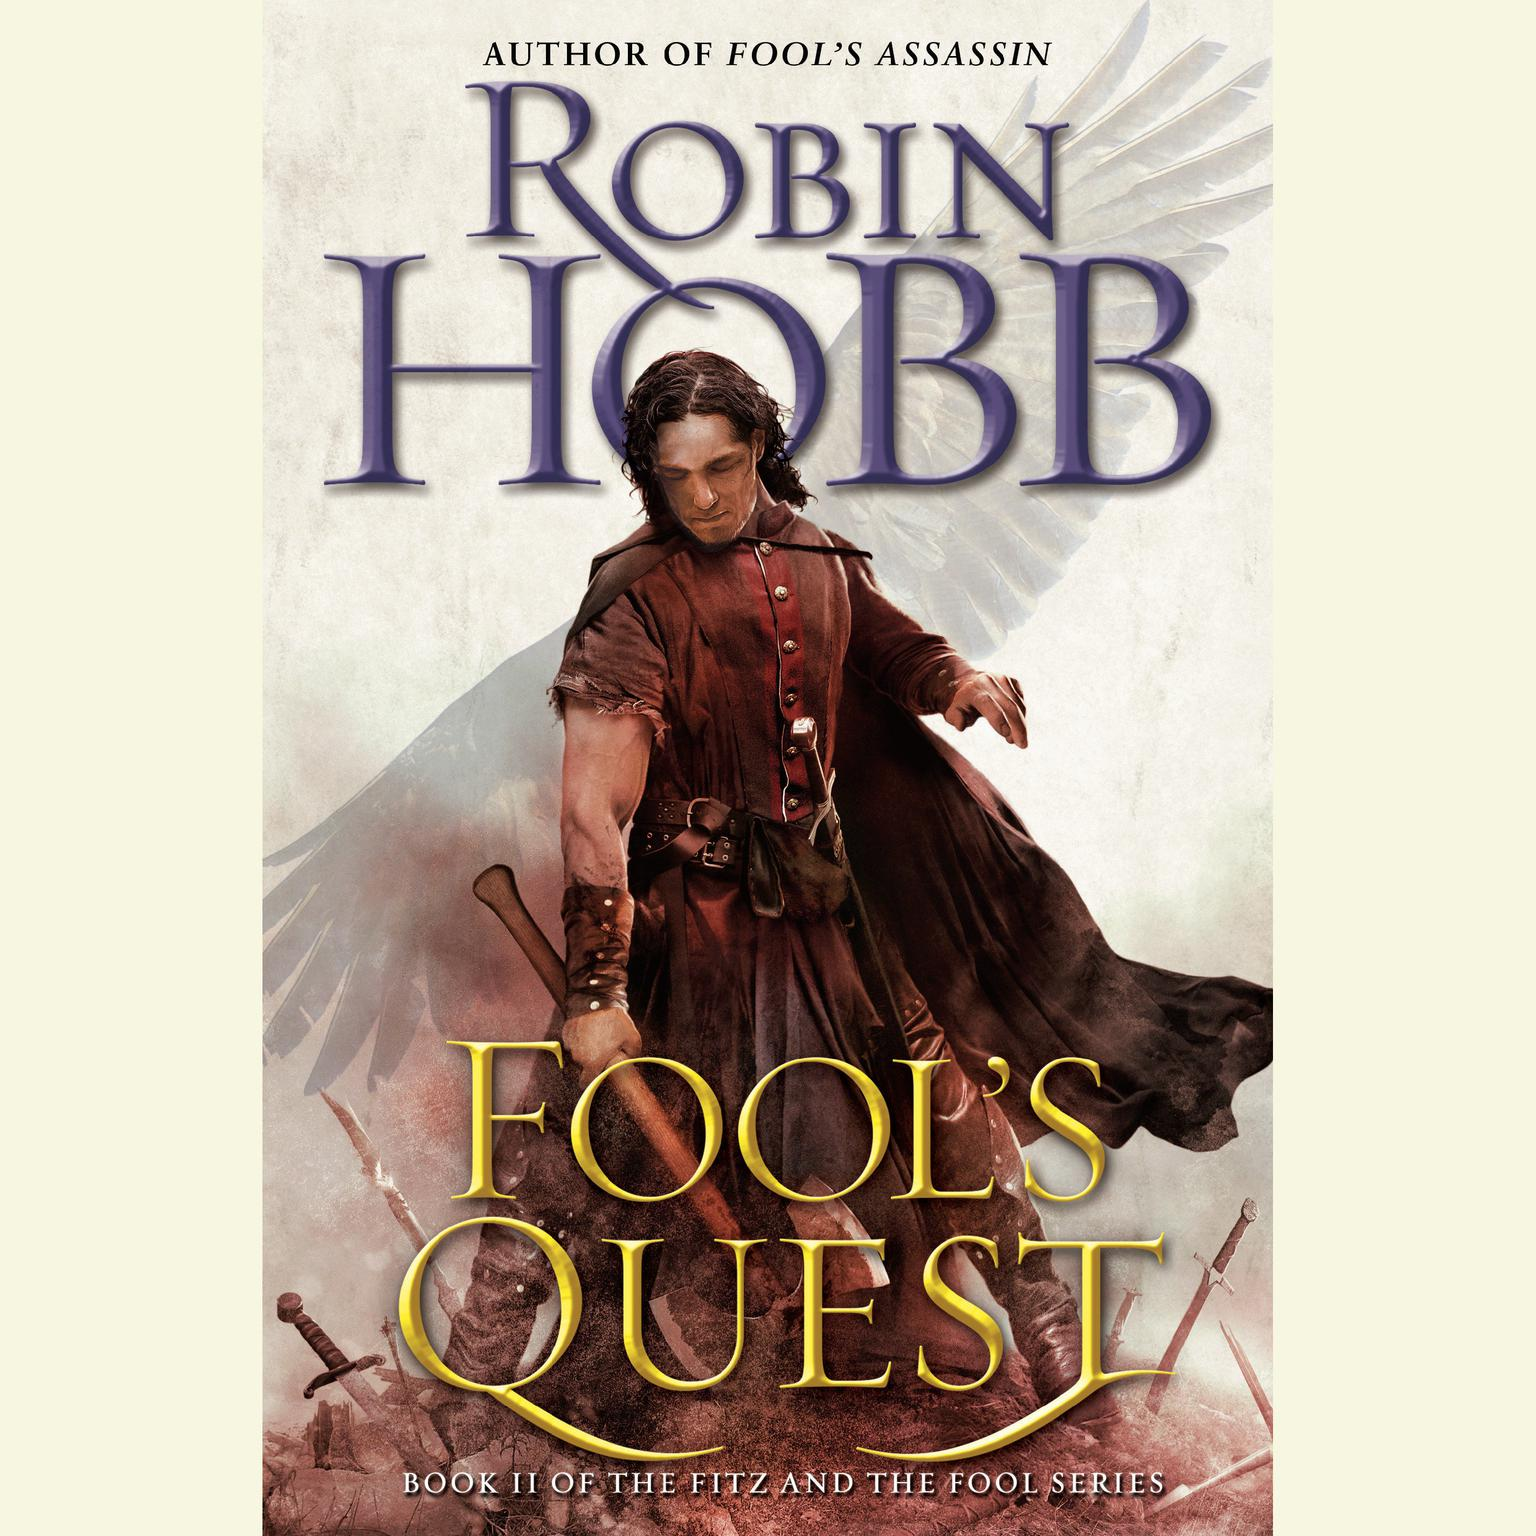 Printable Fool's Quest: Book II of the Fitz and the Fool trilogy Audiobook Cover Art